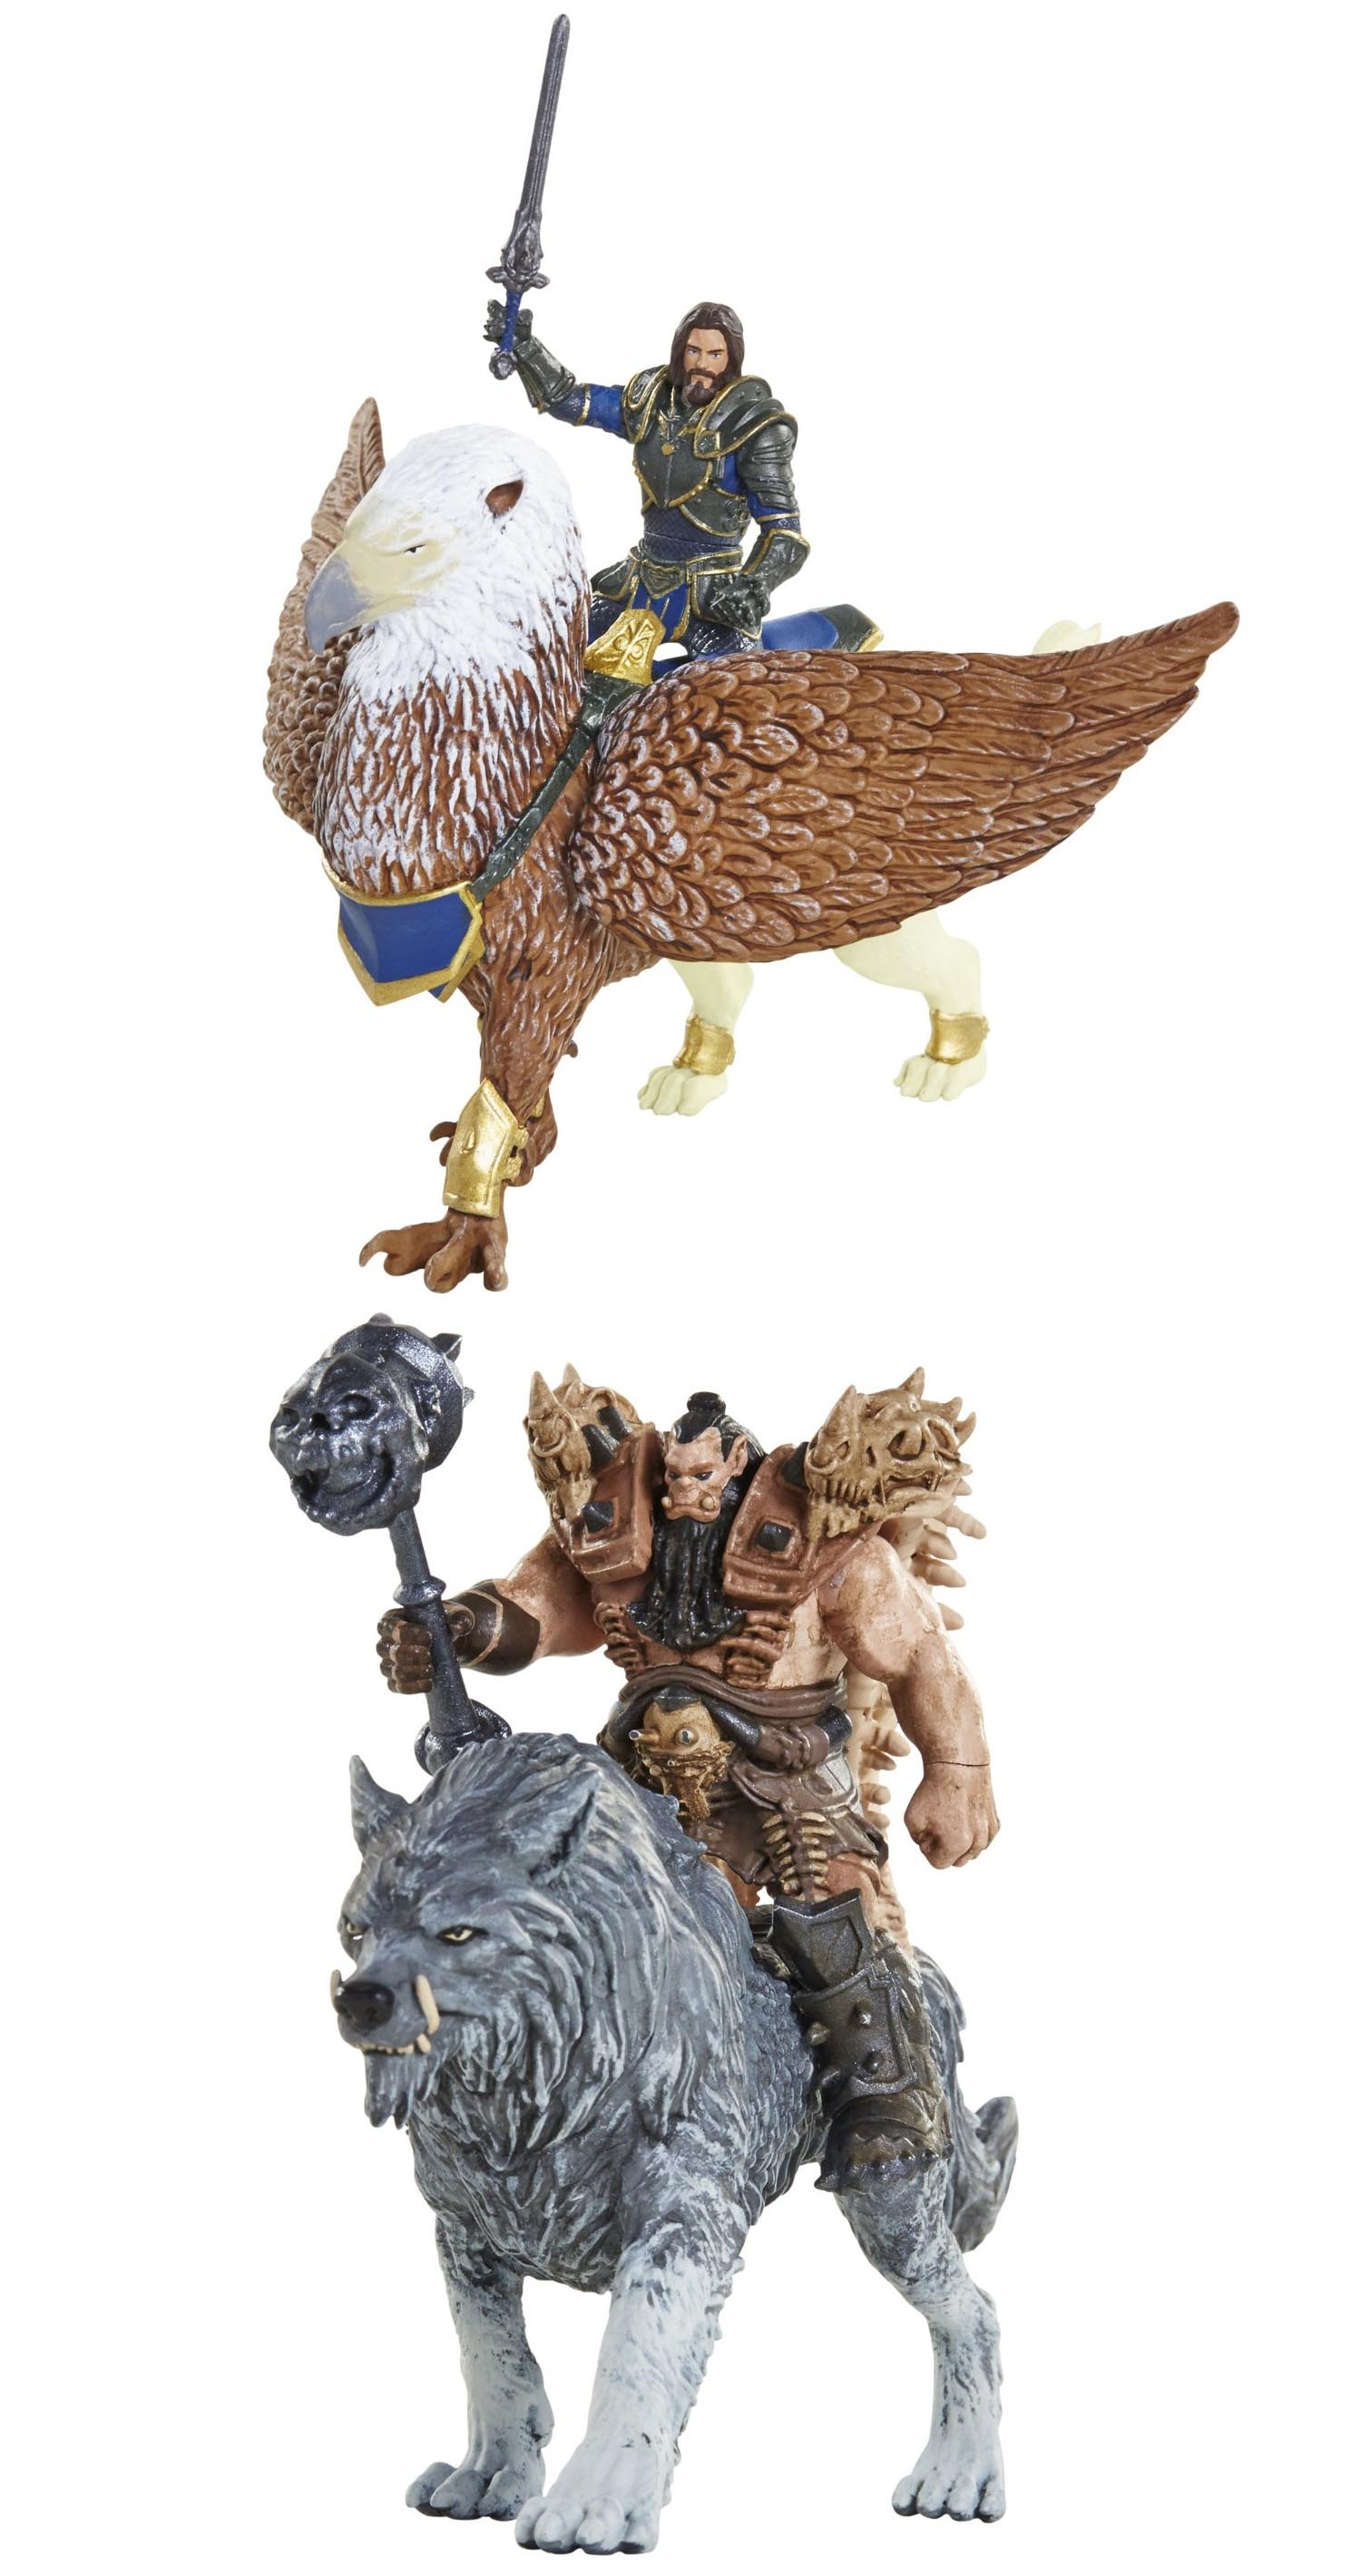 Warcraft Battle in a Box Action Figure pack